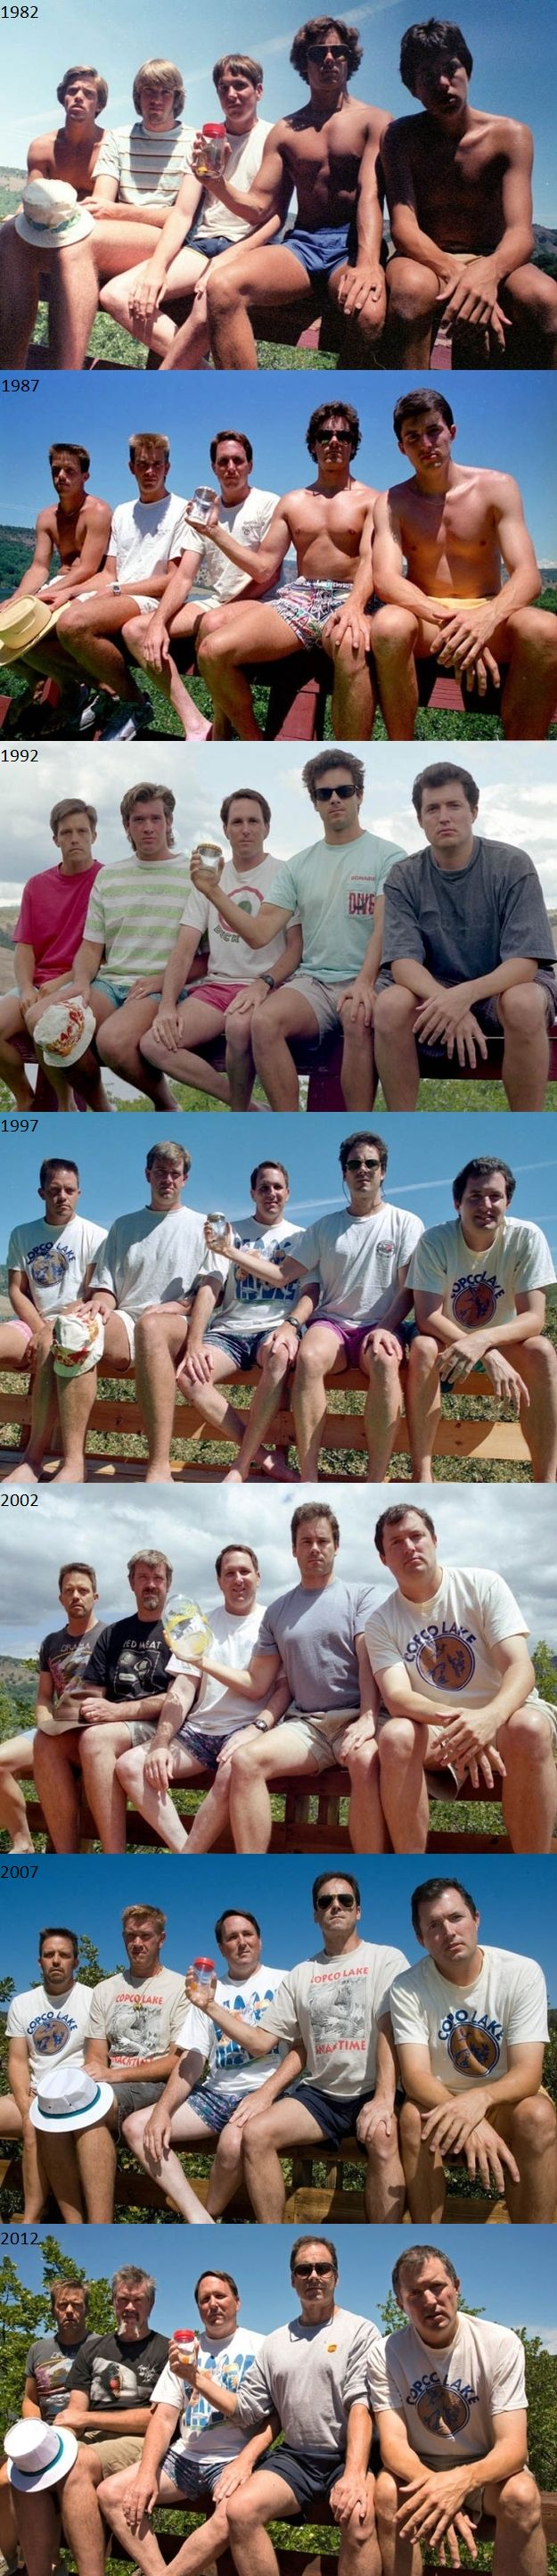 These five friends have taken a picture every 5 years from 1982 to 2012